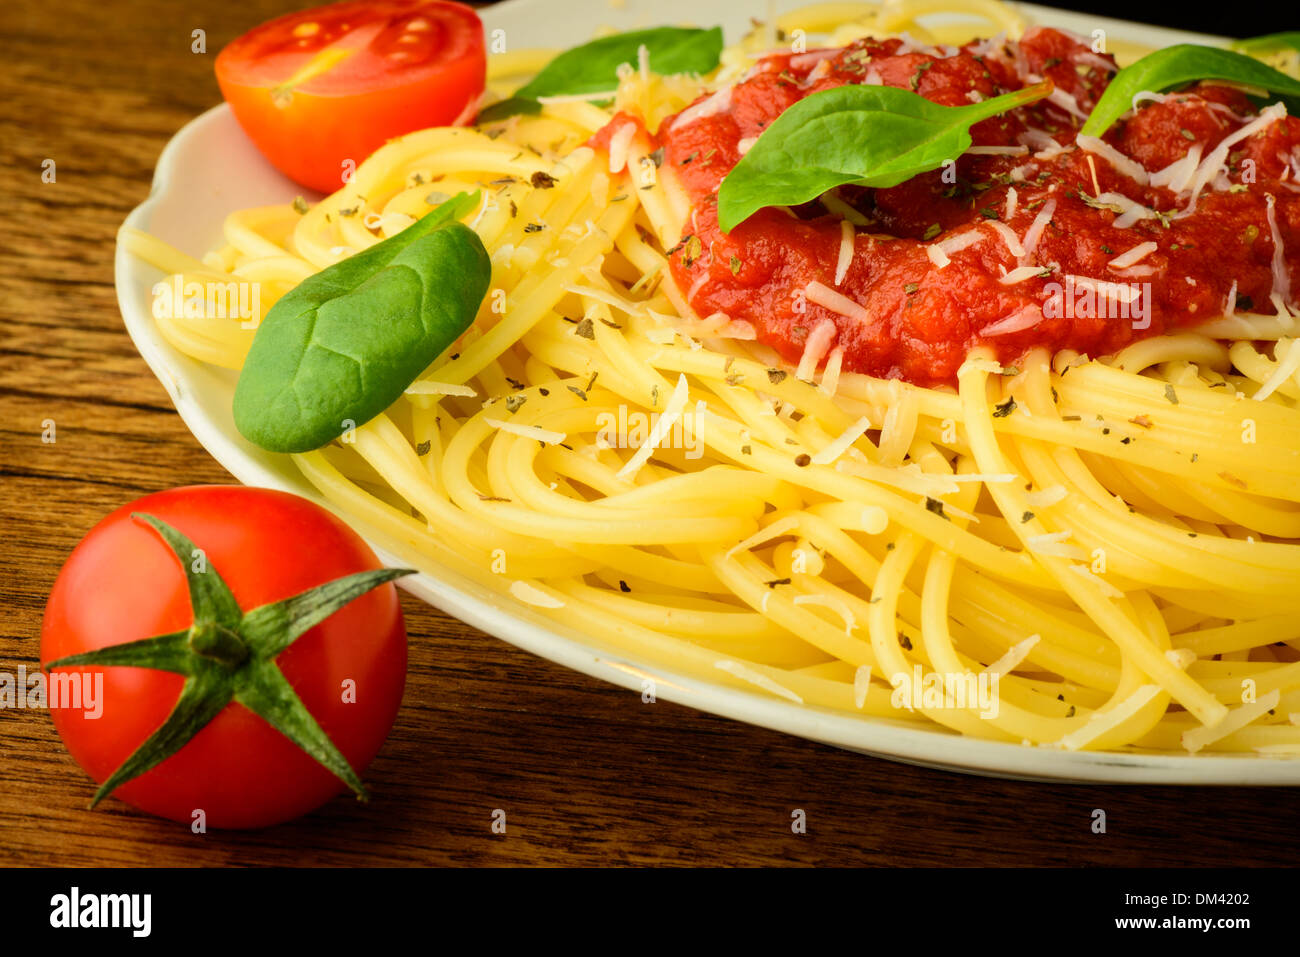 traditional spaghetti pasta with tomato sauce on a plate - Stock Image